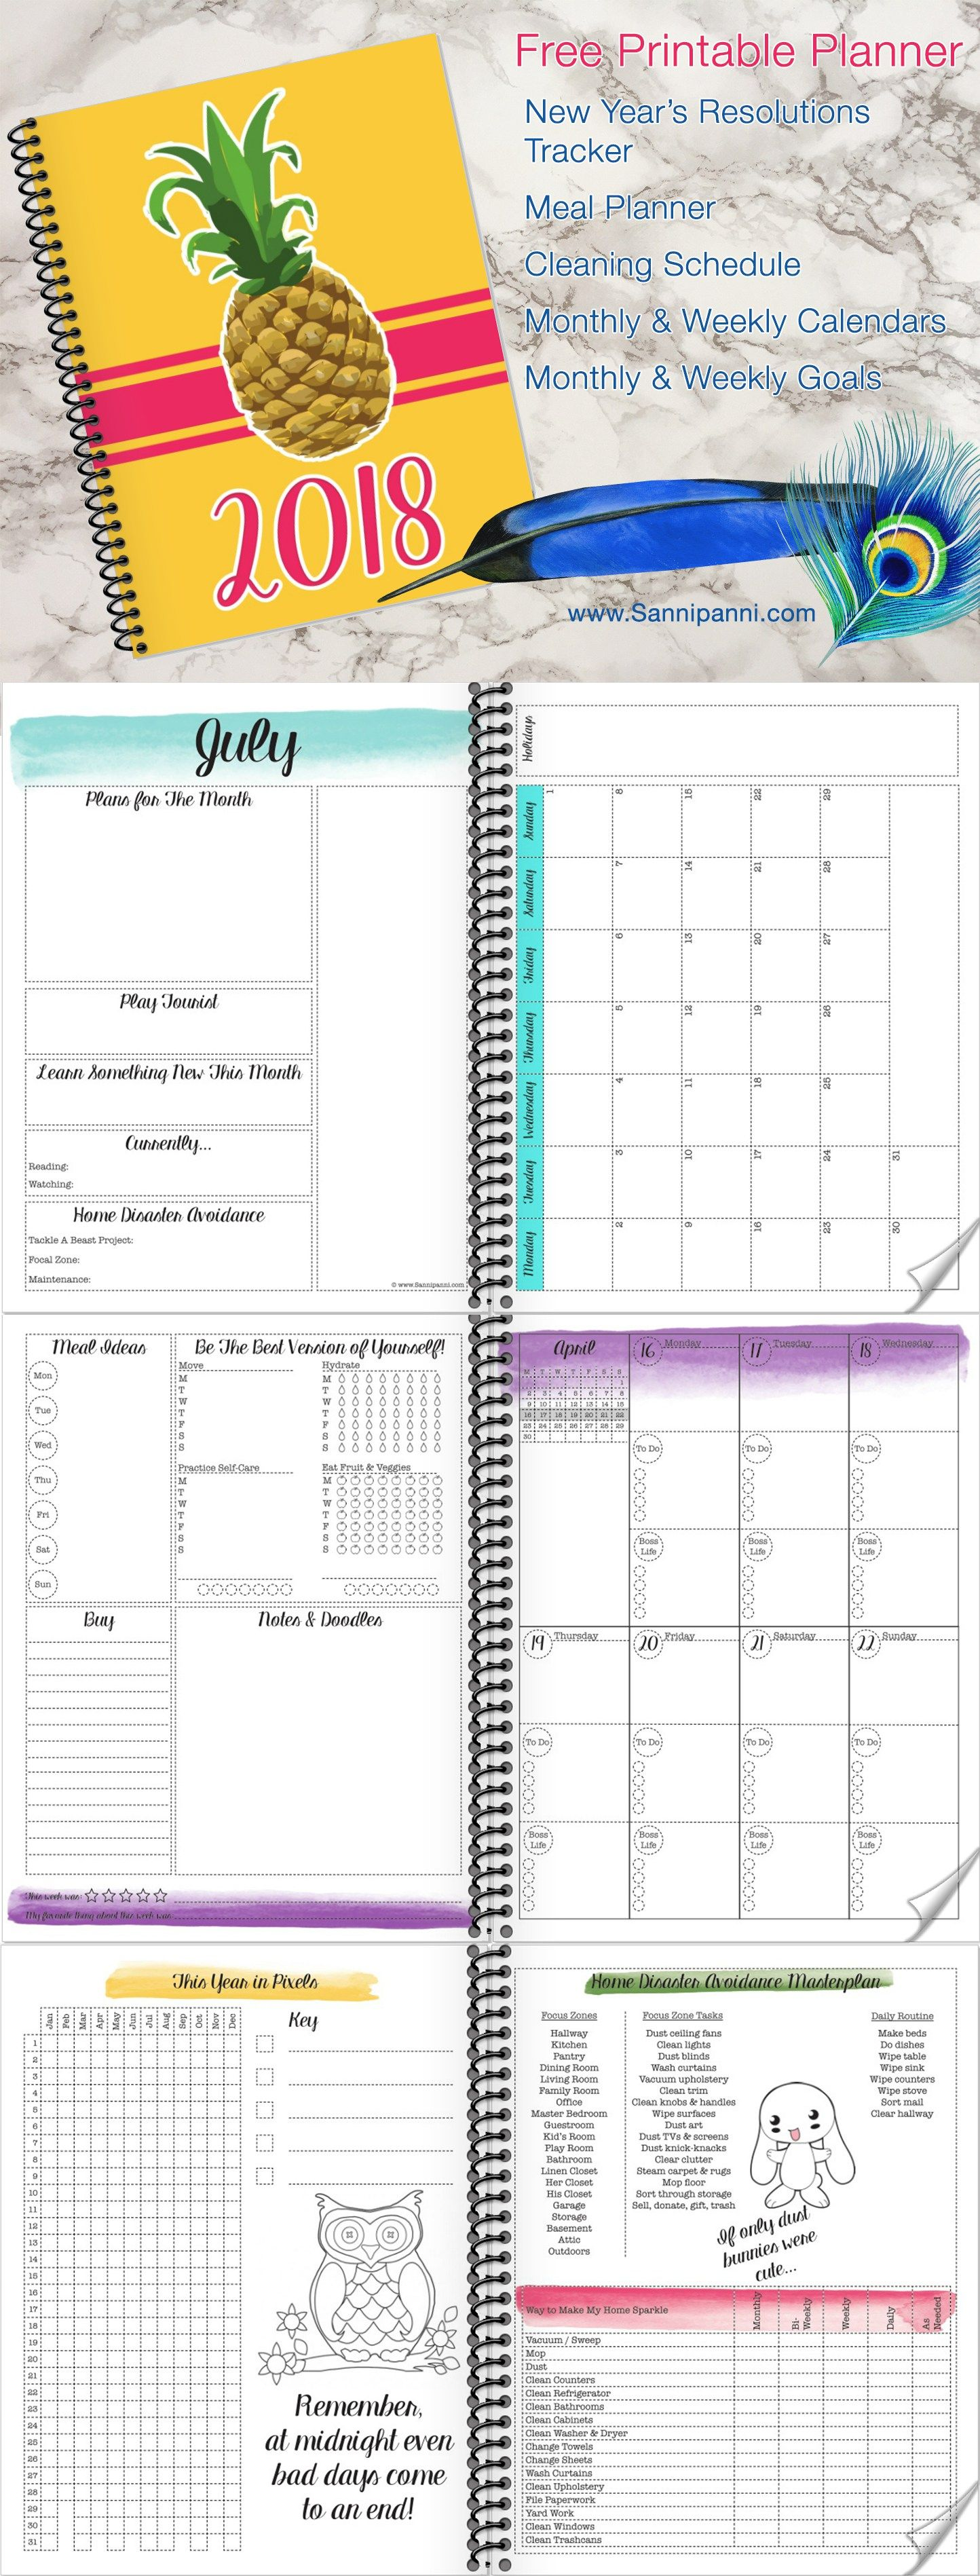 The Most Amazing Free Printable Planner For Includes